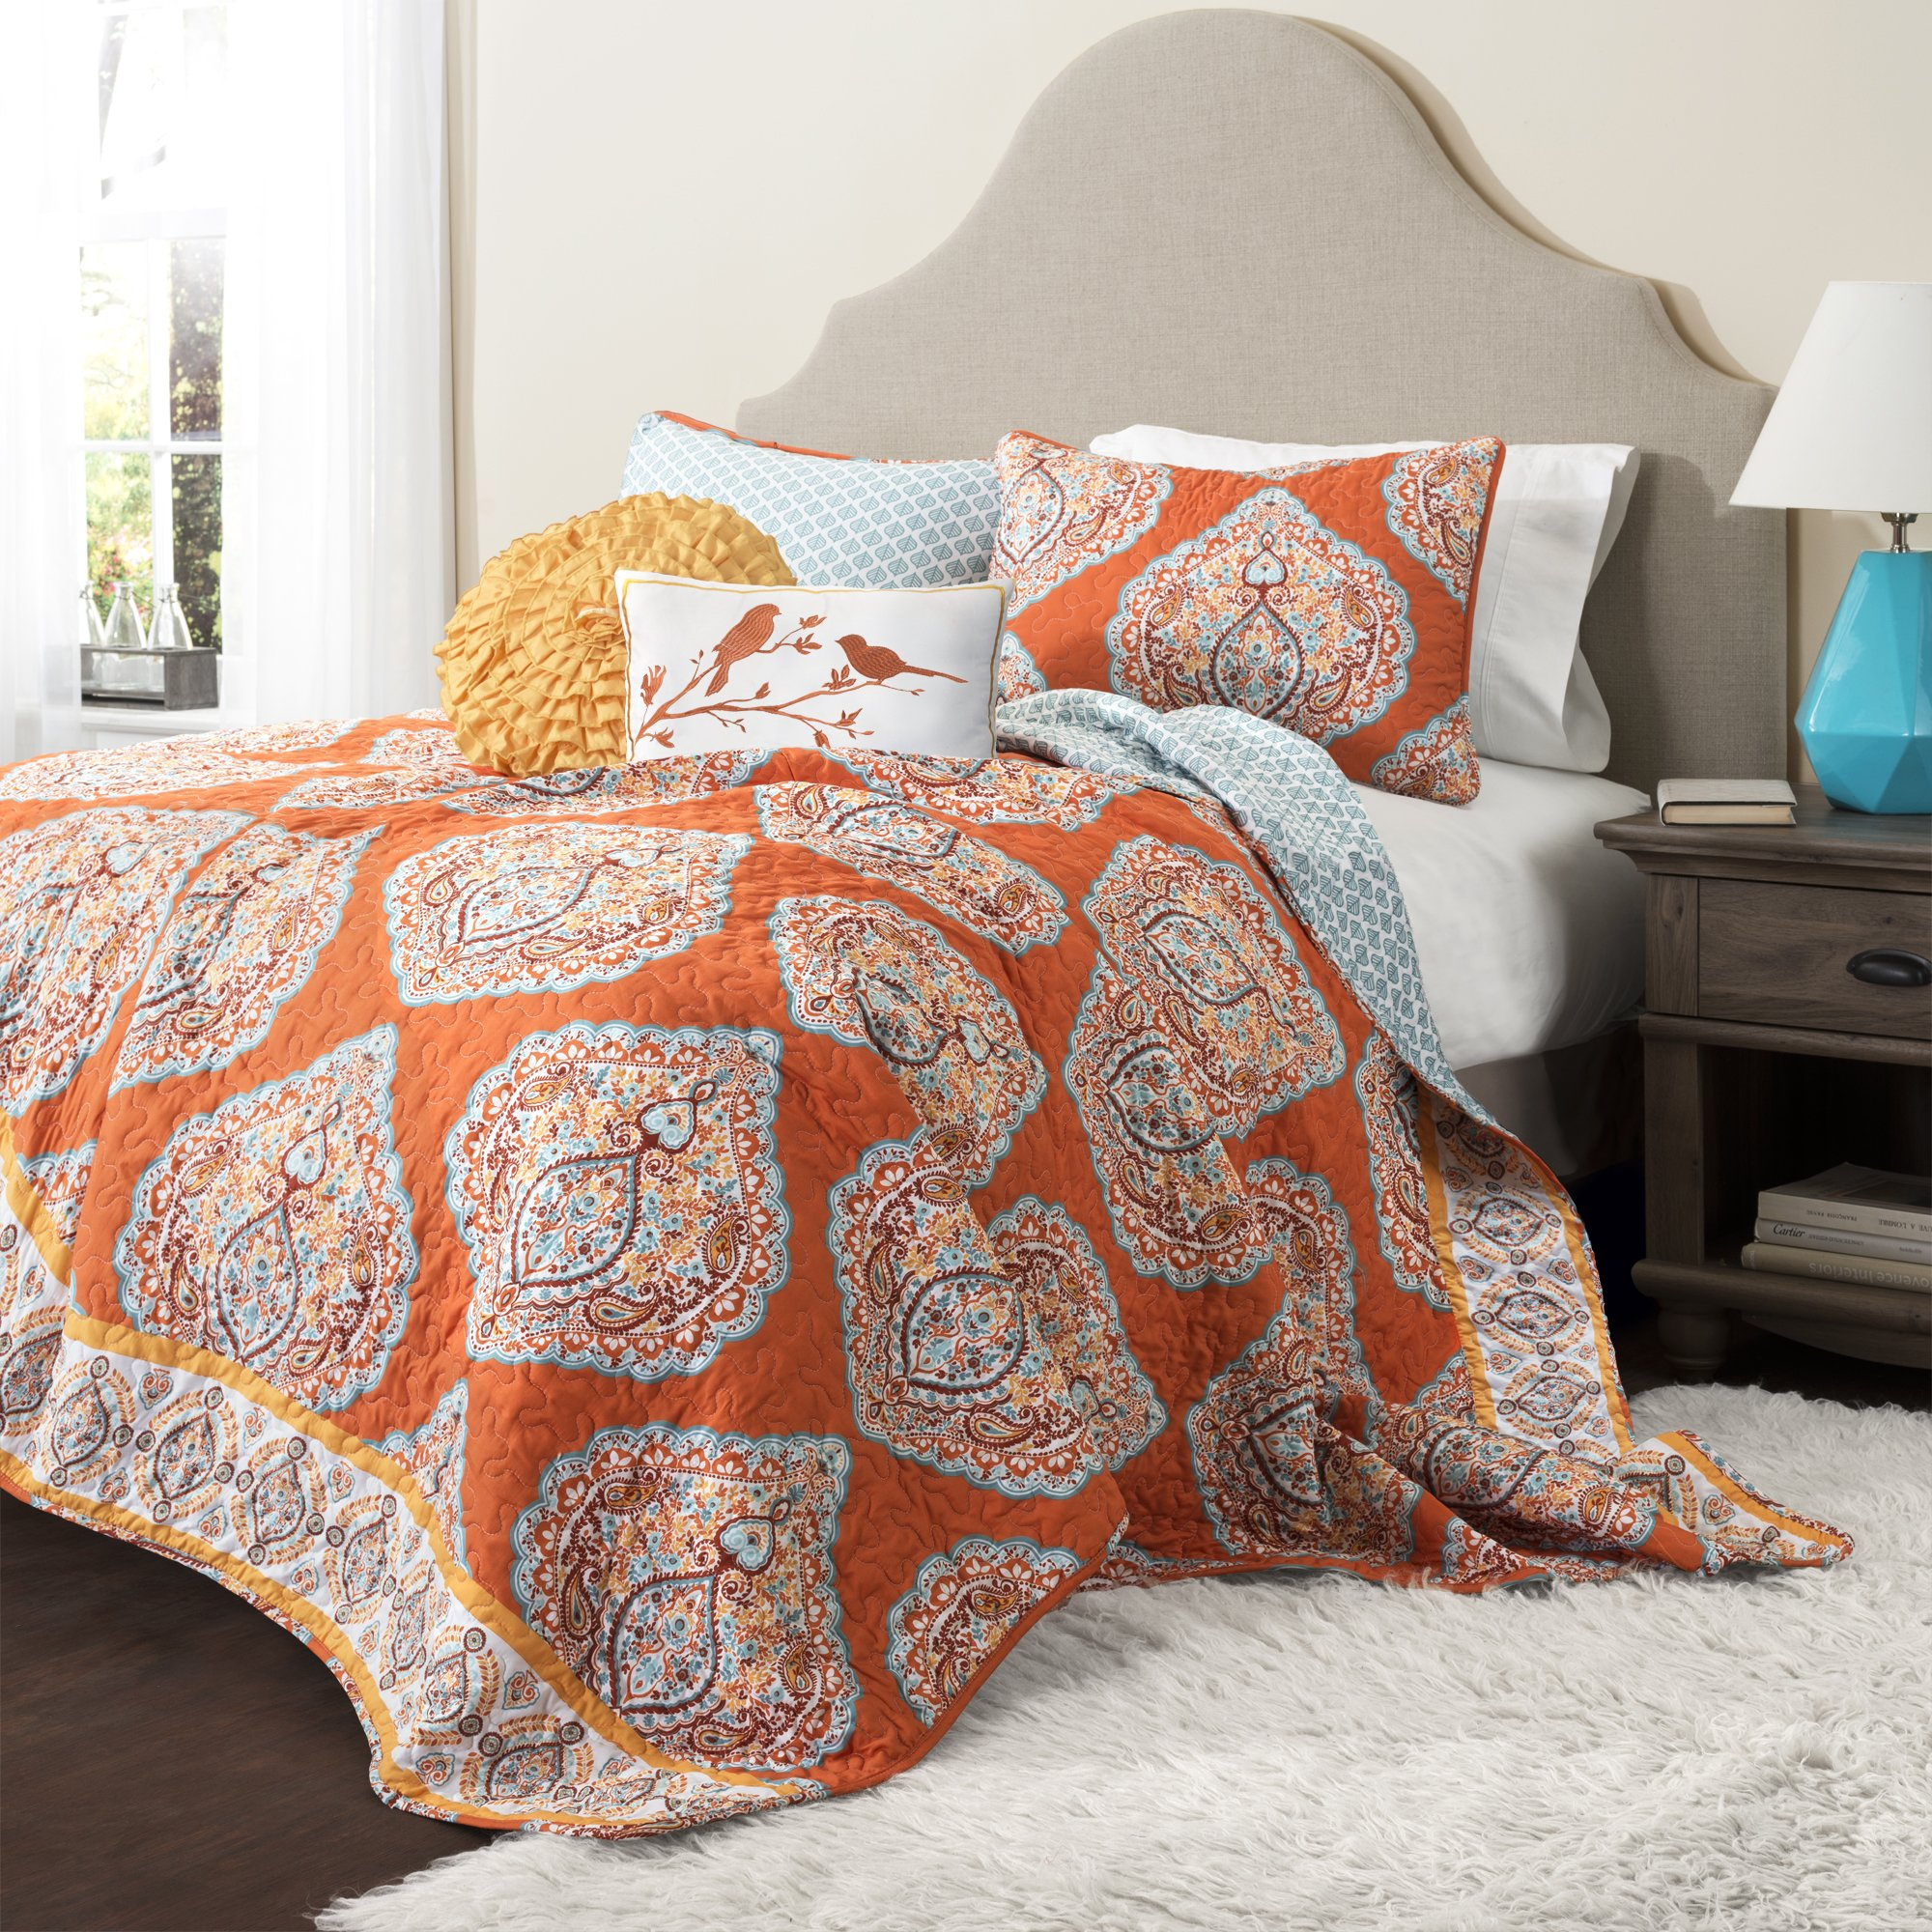 Lush Decor 5 Piece Harley Quilt Set, King, Tangerine